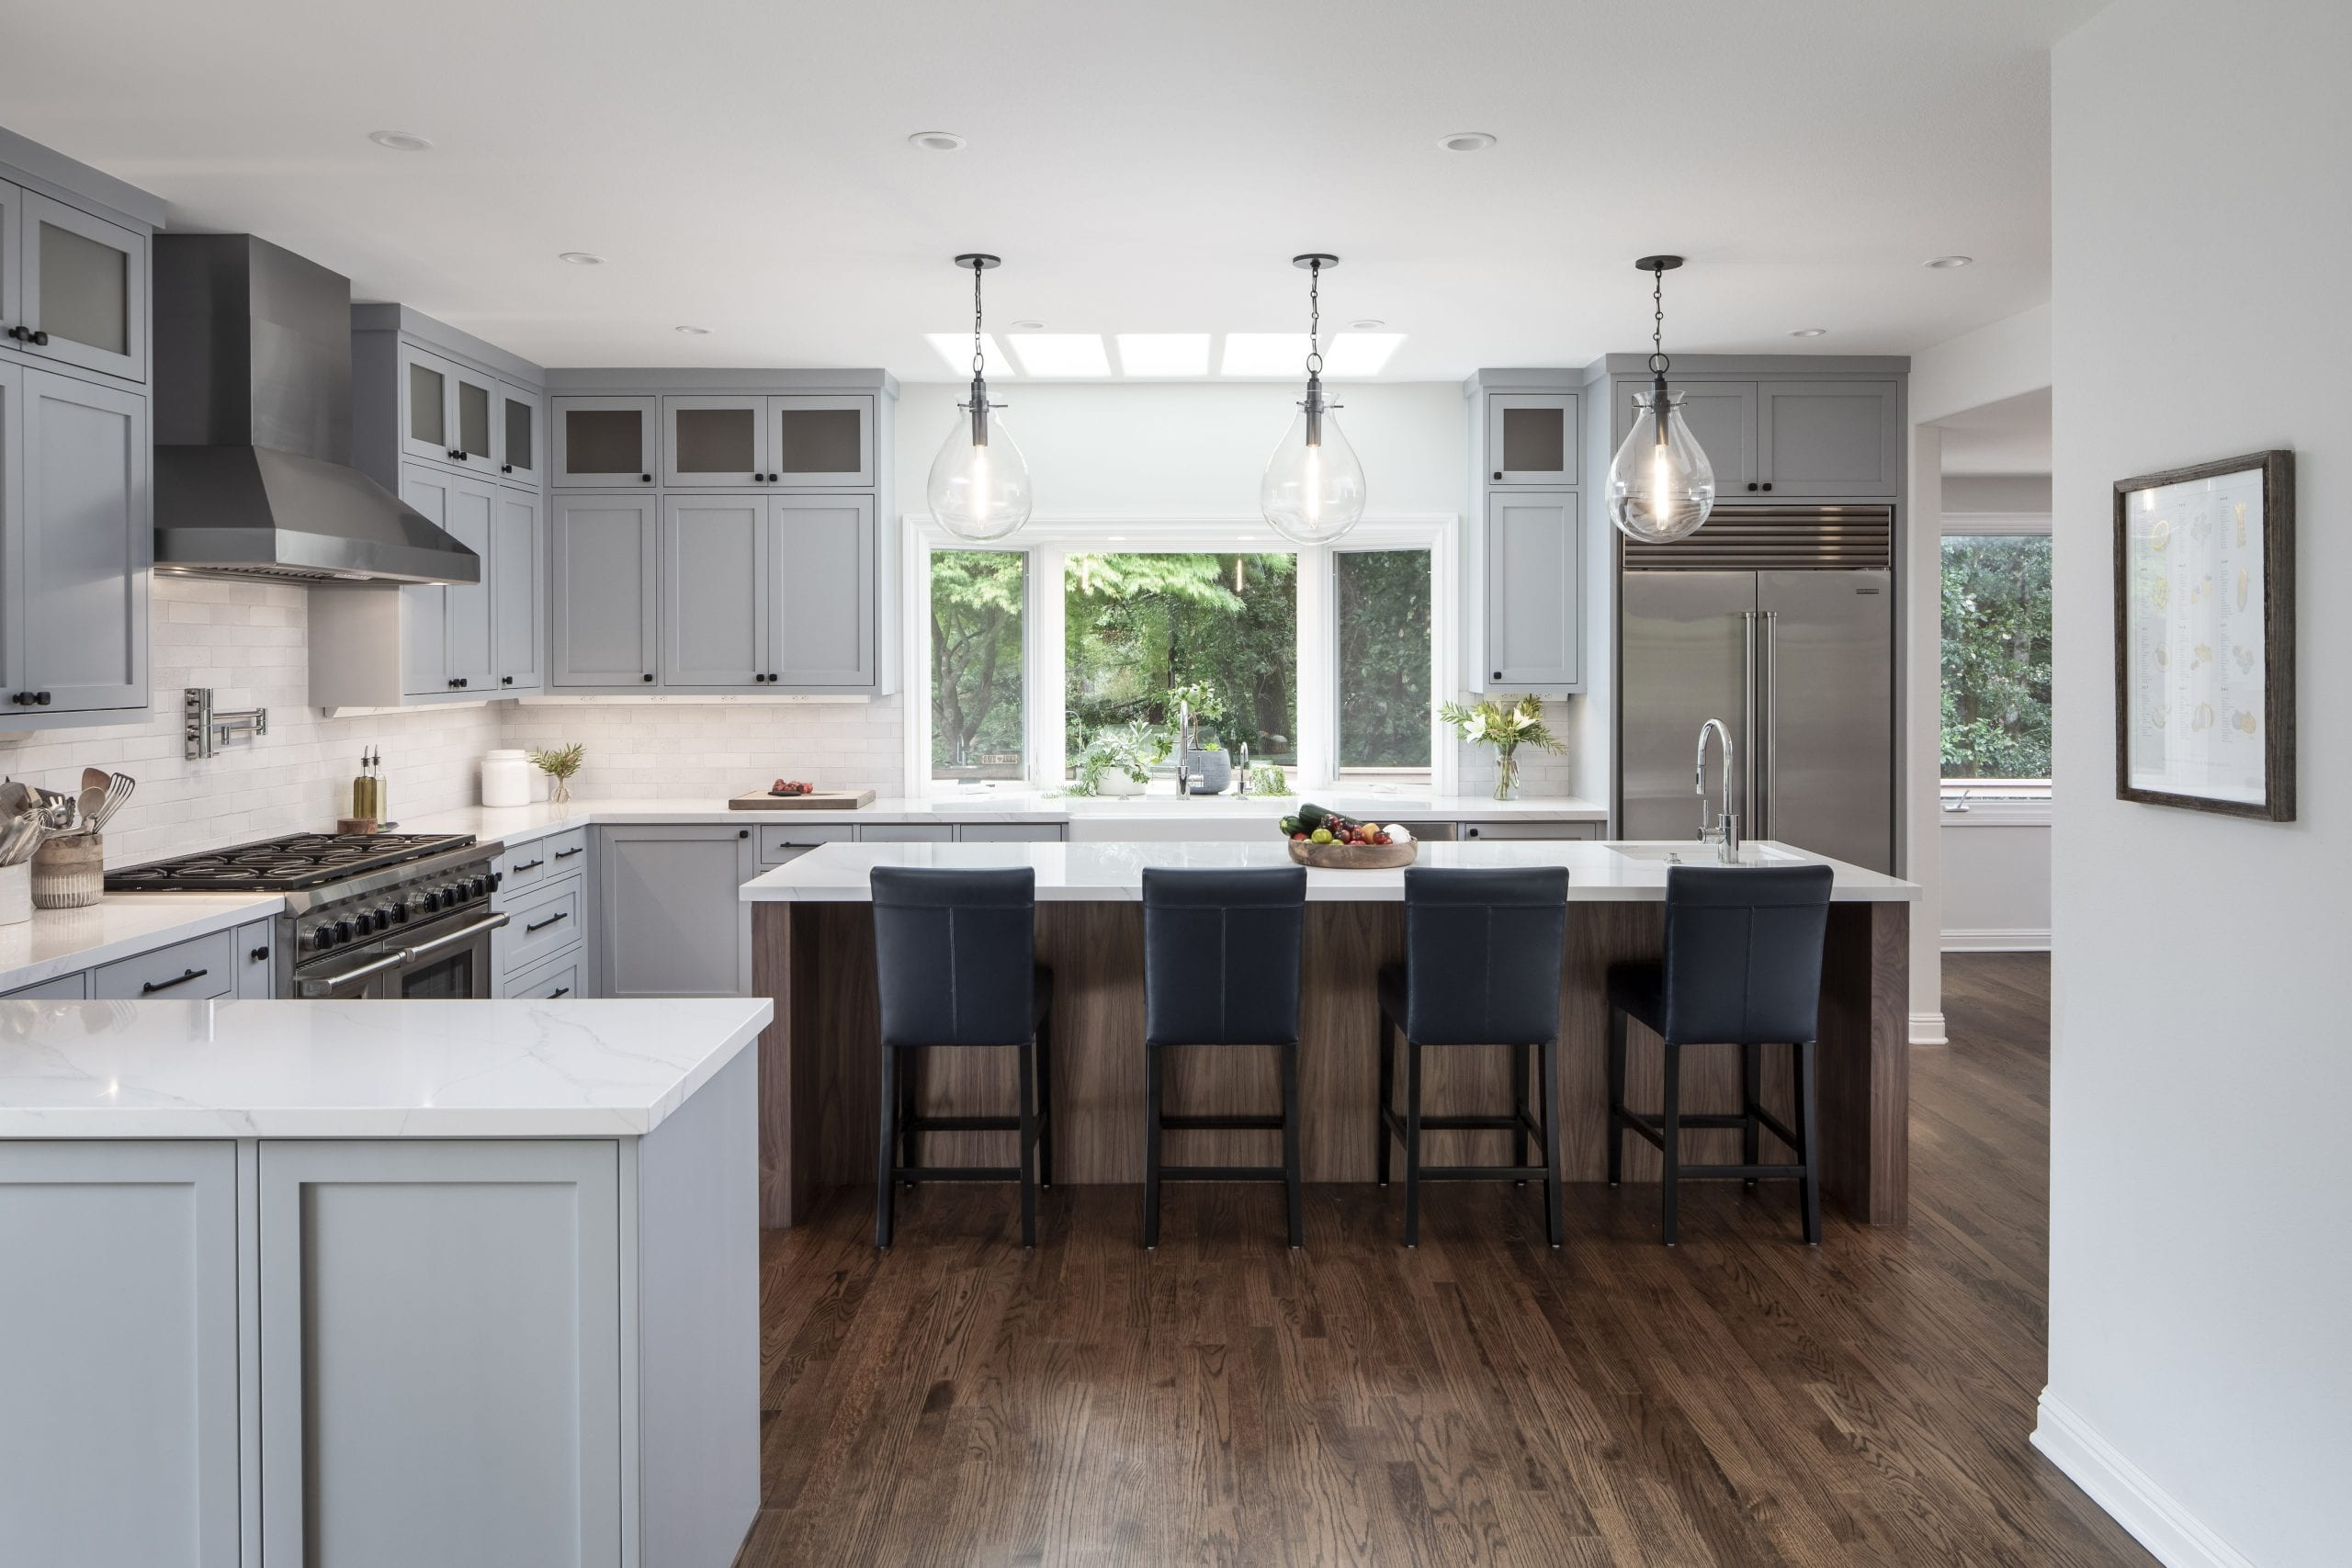 Kitchen with three hanging lights over a white marble island